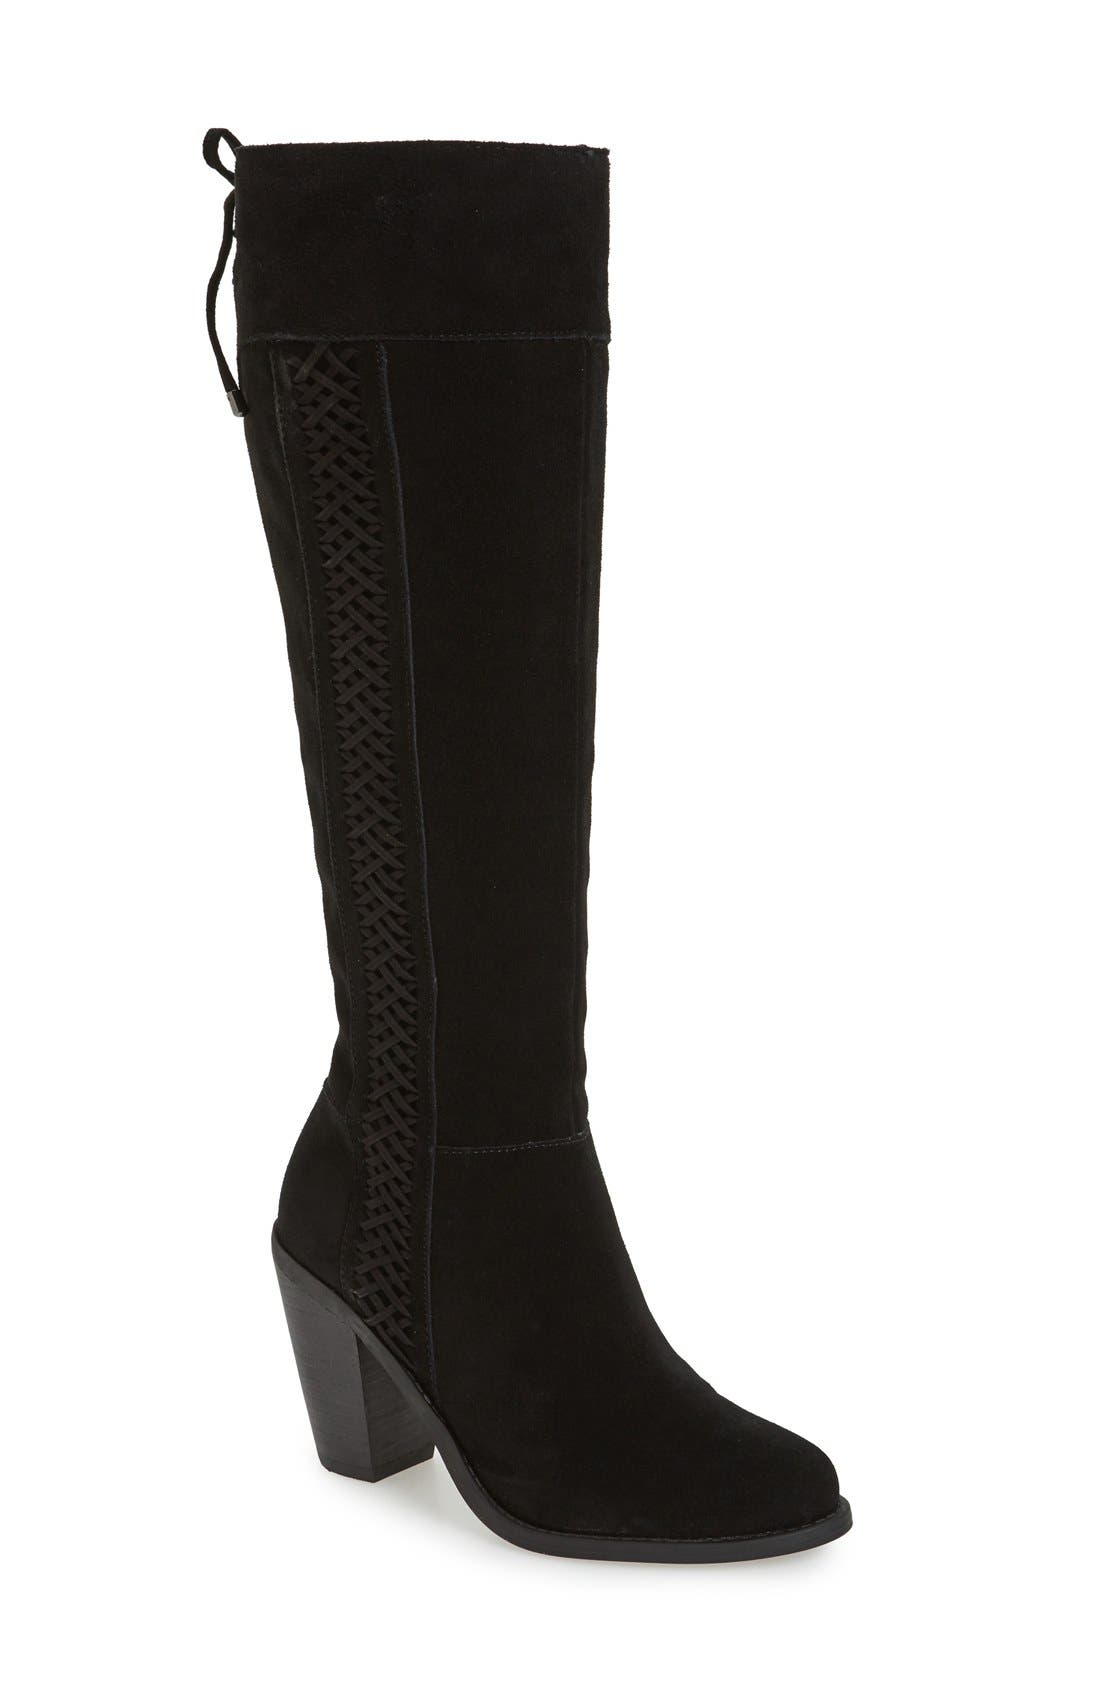 Ciarah Knee High Boot,                             Main thumbnail 1, color,                             001